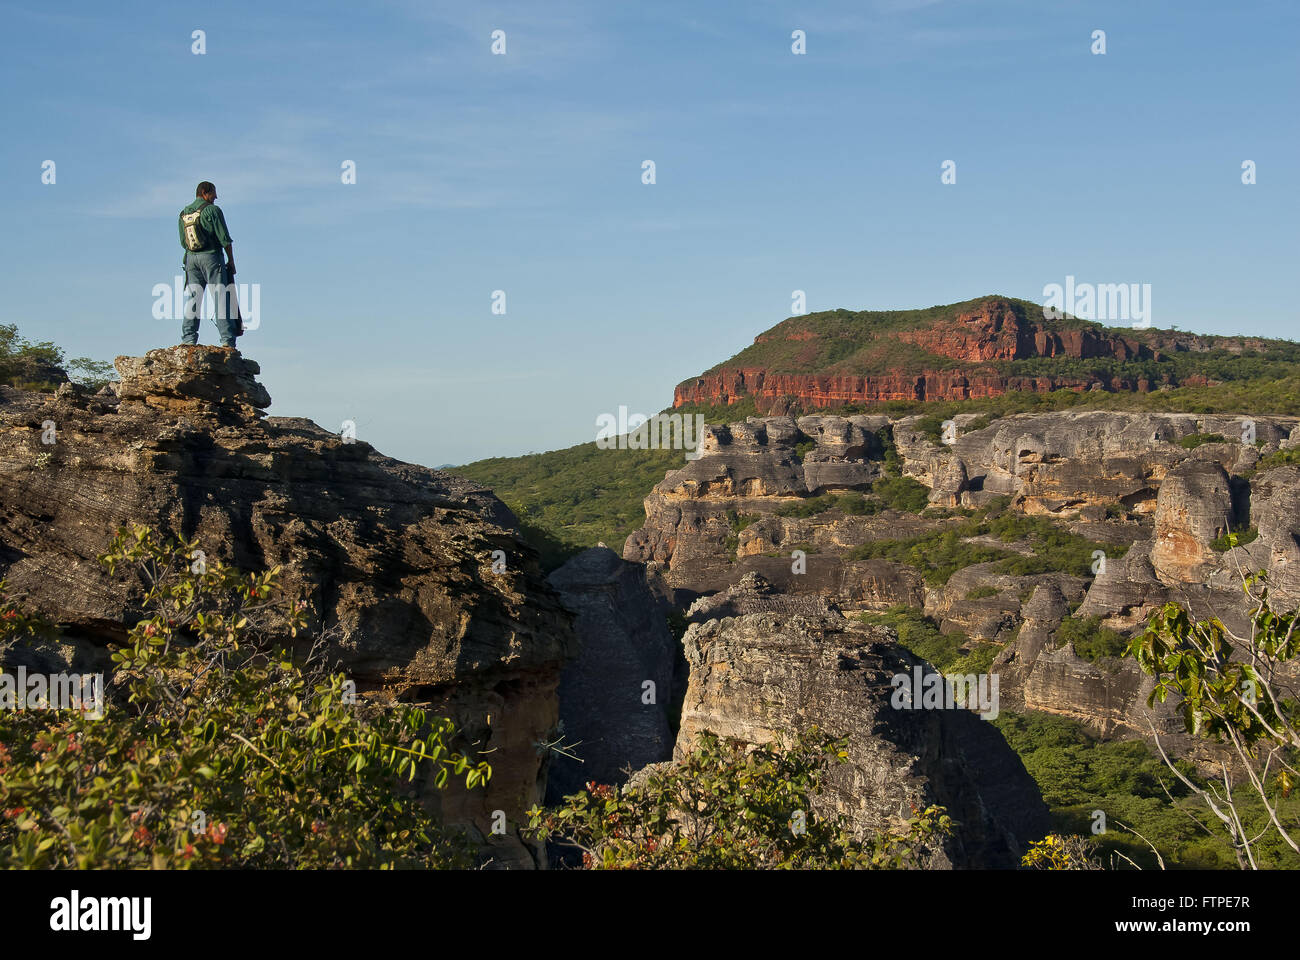 Tourist guide in sandstone formations in the Baixao Canoes Sierra Red - Stock Image